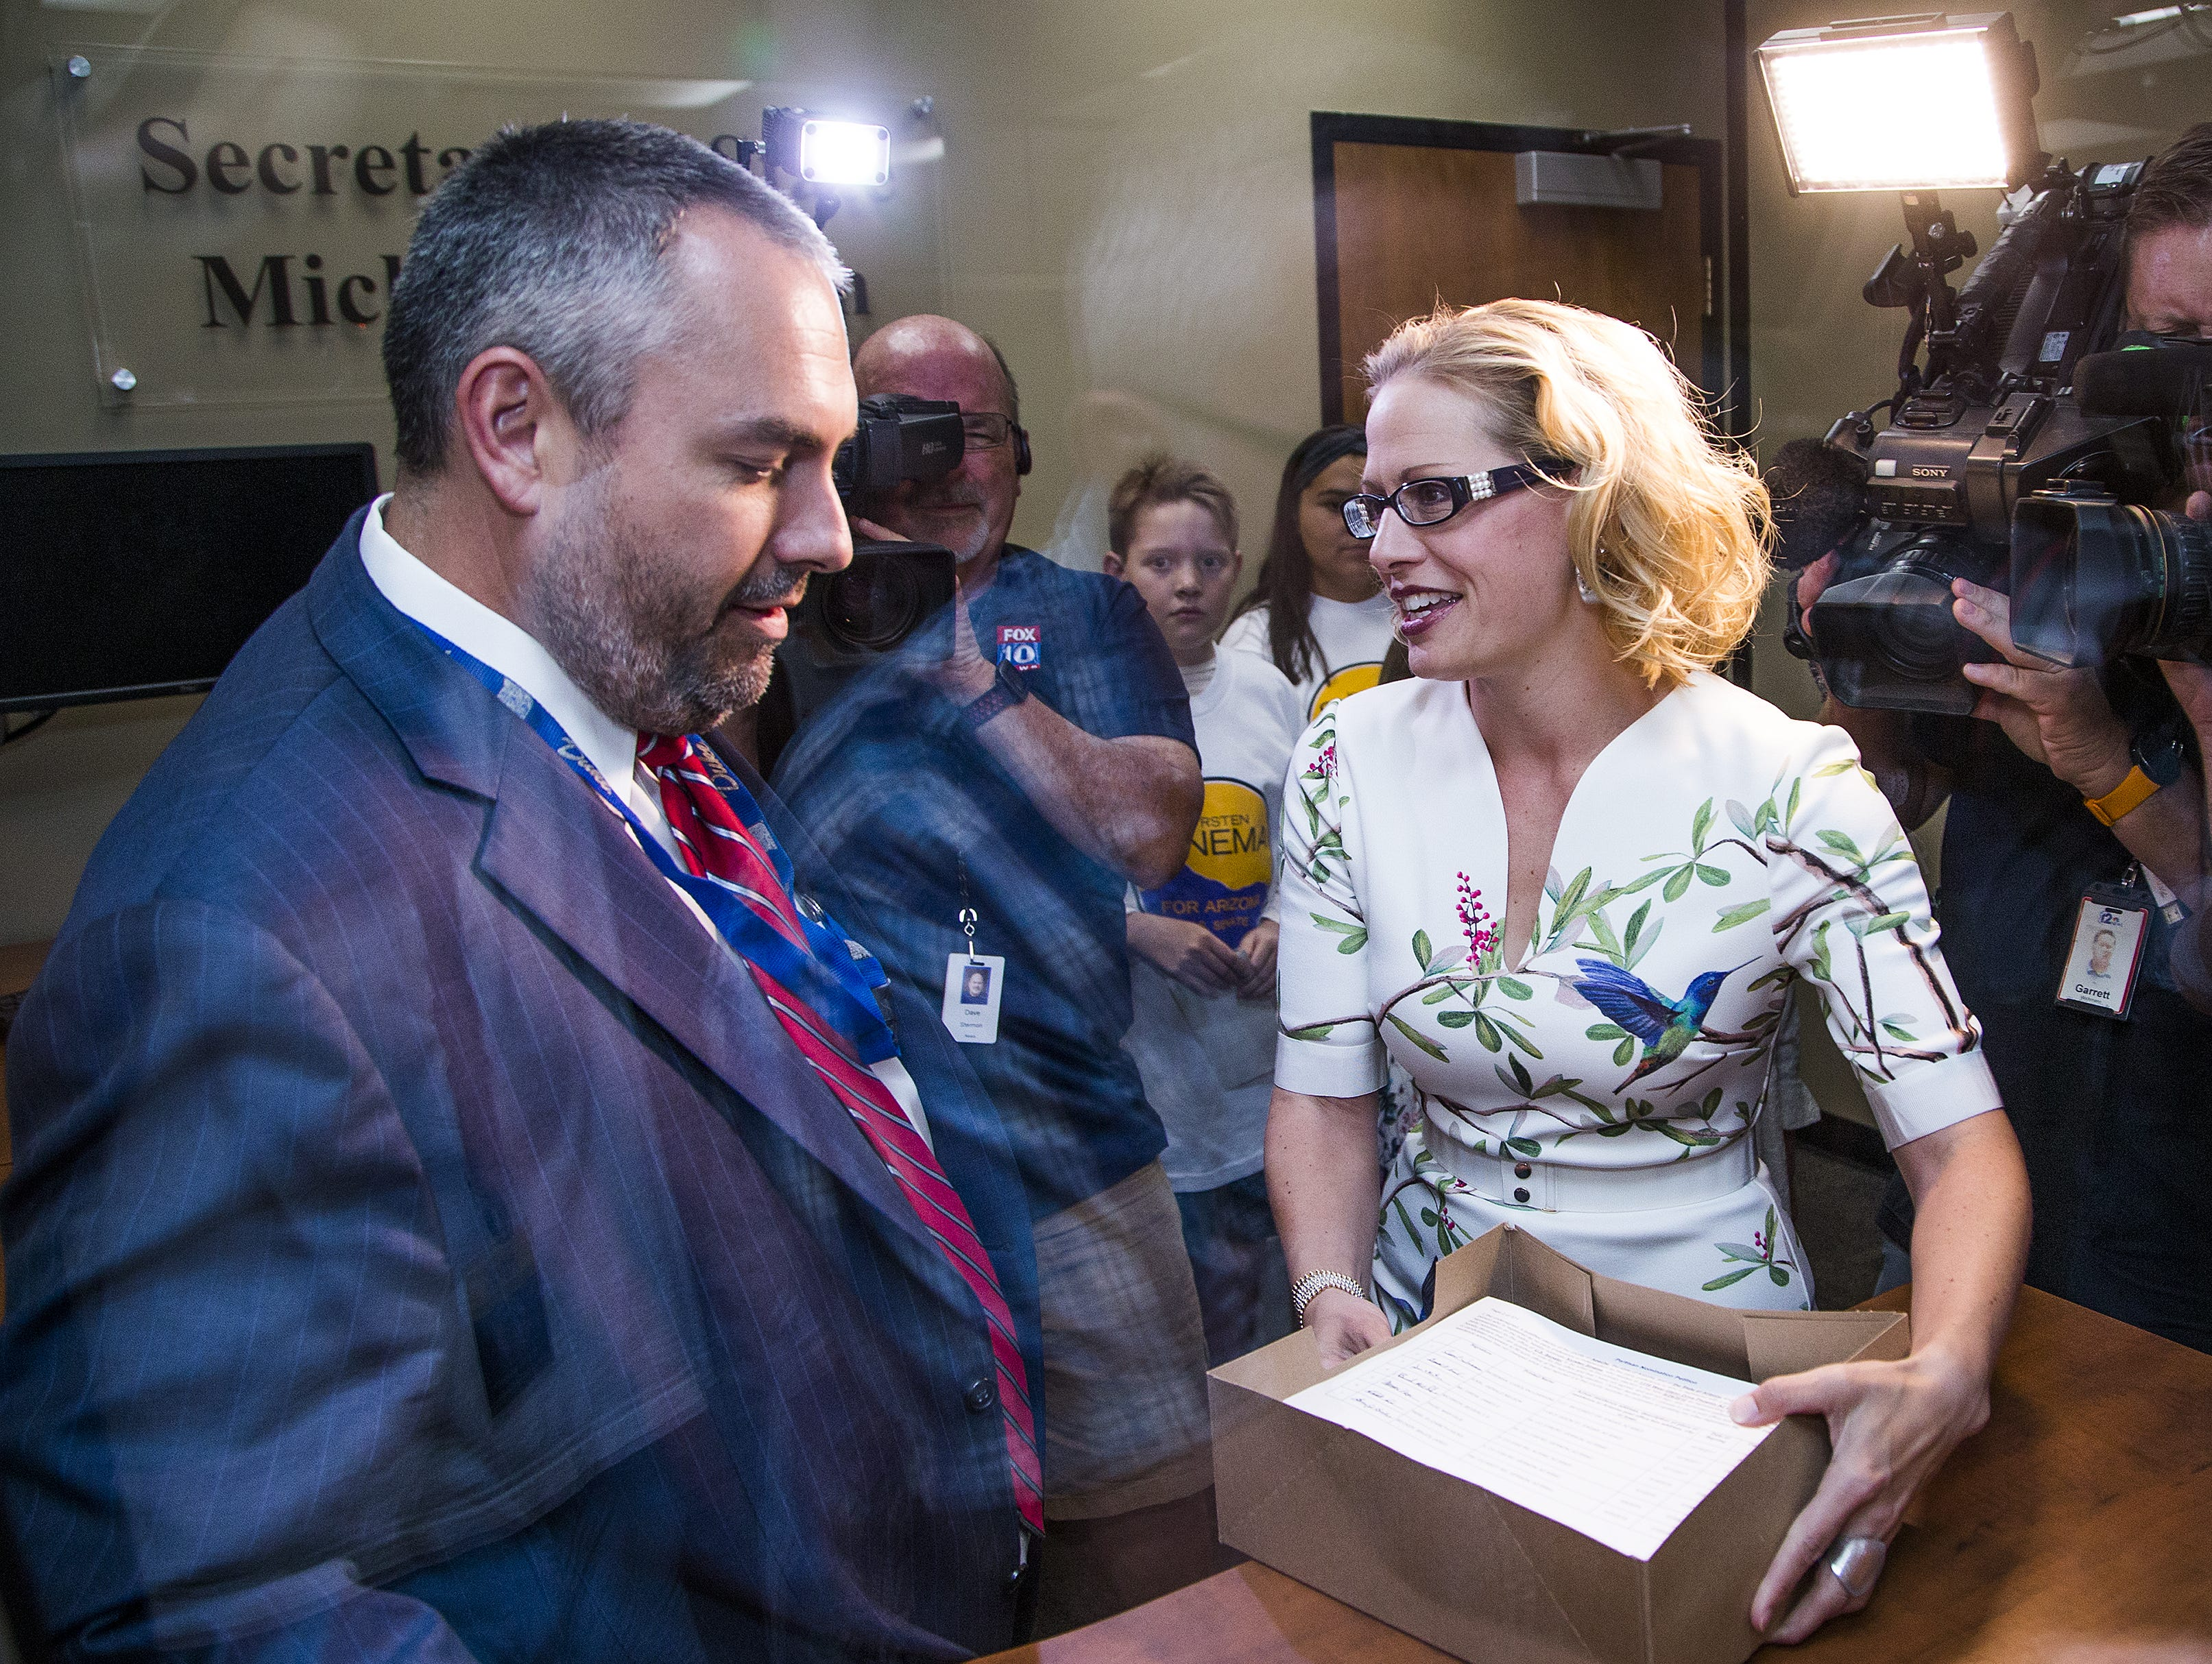 Rep. Kyrsten Sinema, D-Dist. 9, turns in signatures to Eric Spencer, director of election services for the Office of the Secretary of State, in Phoenix, Tuesday, May 29, 2018.   Sinema is running for U.S. Senate.